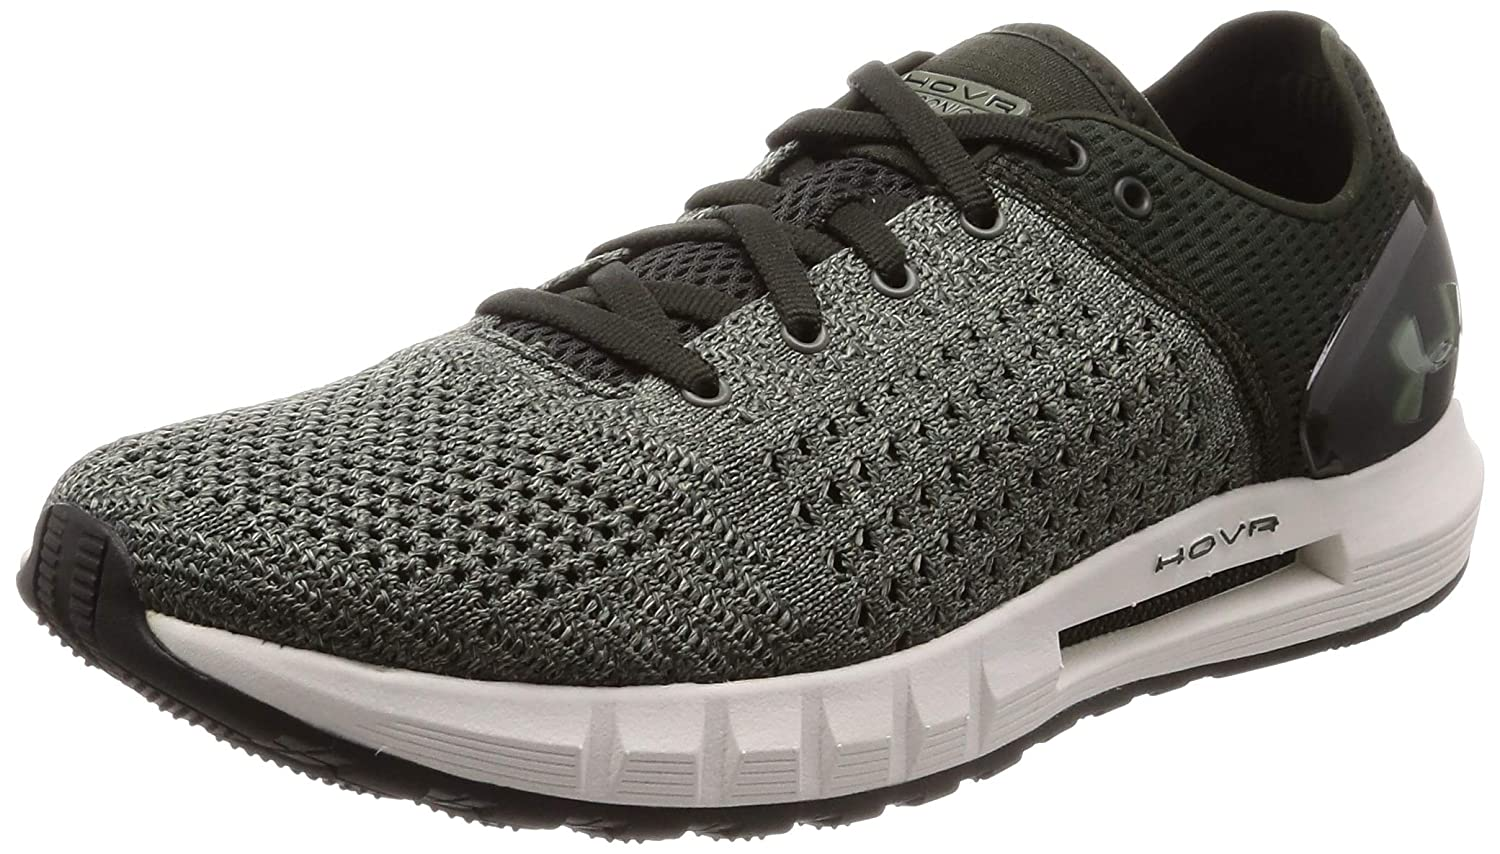 competitive price 5086b 6ff0c Under Armour Men's HOVR Sonic Running Shoe